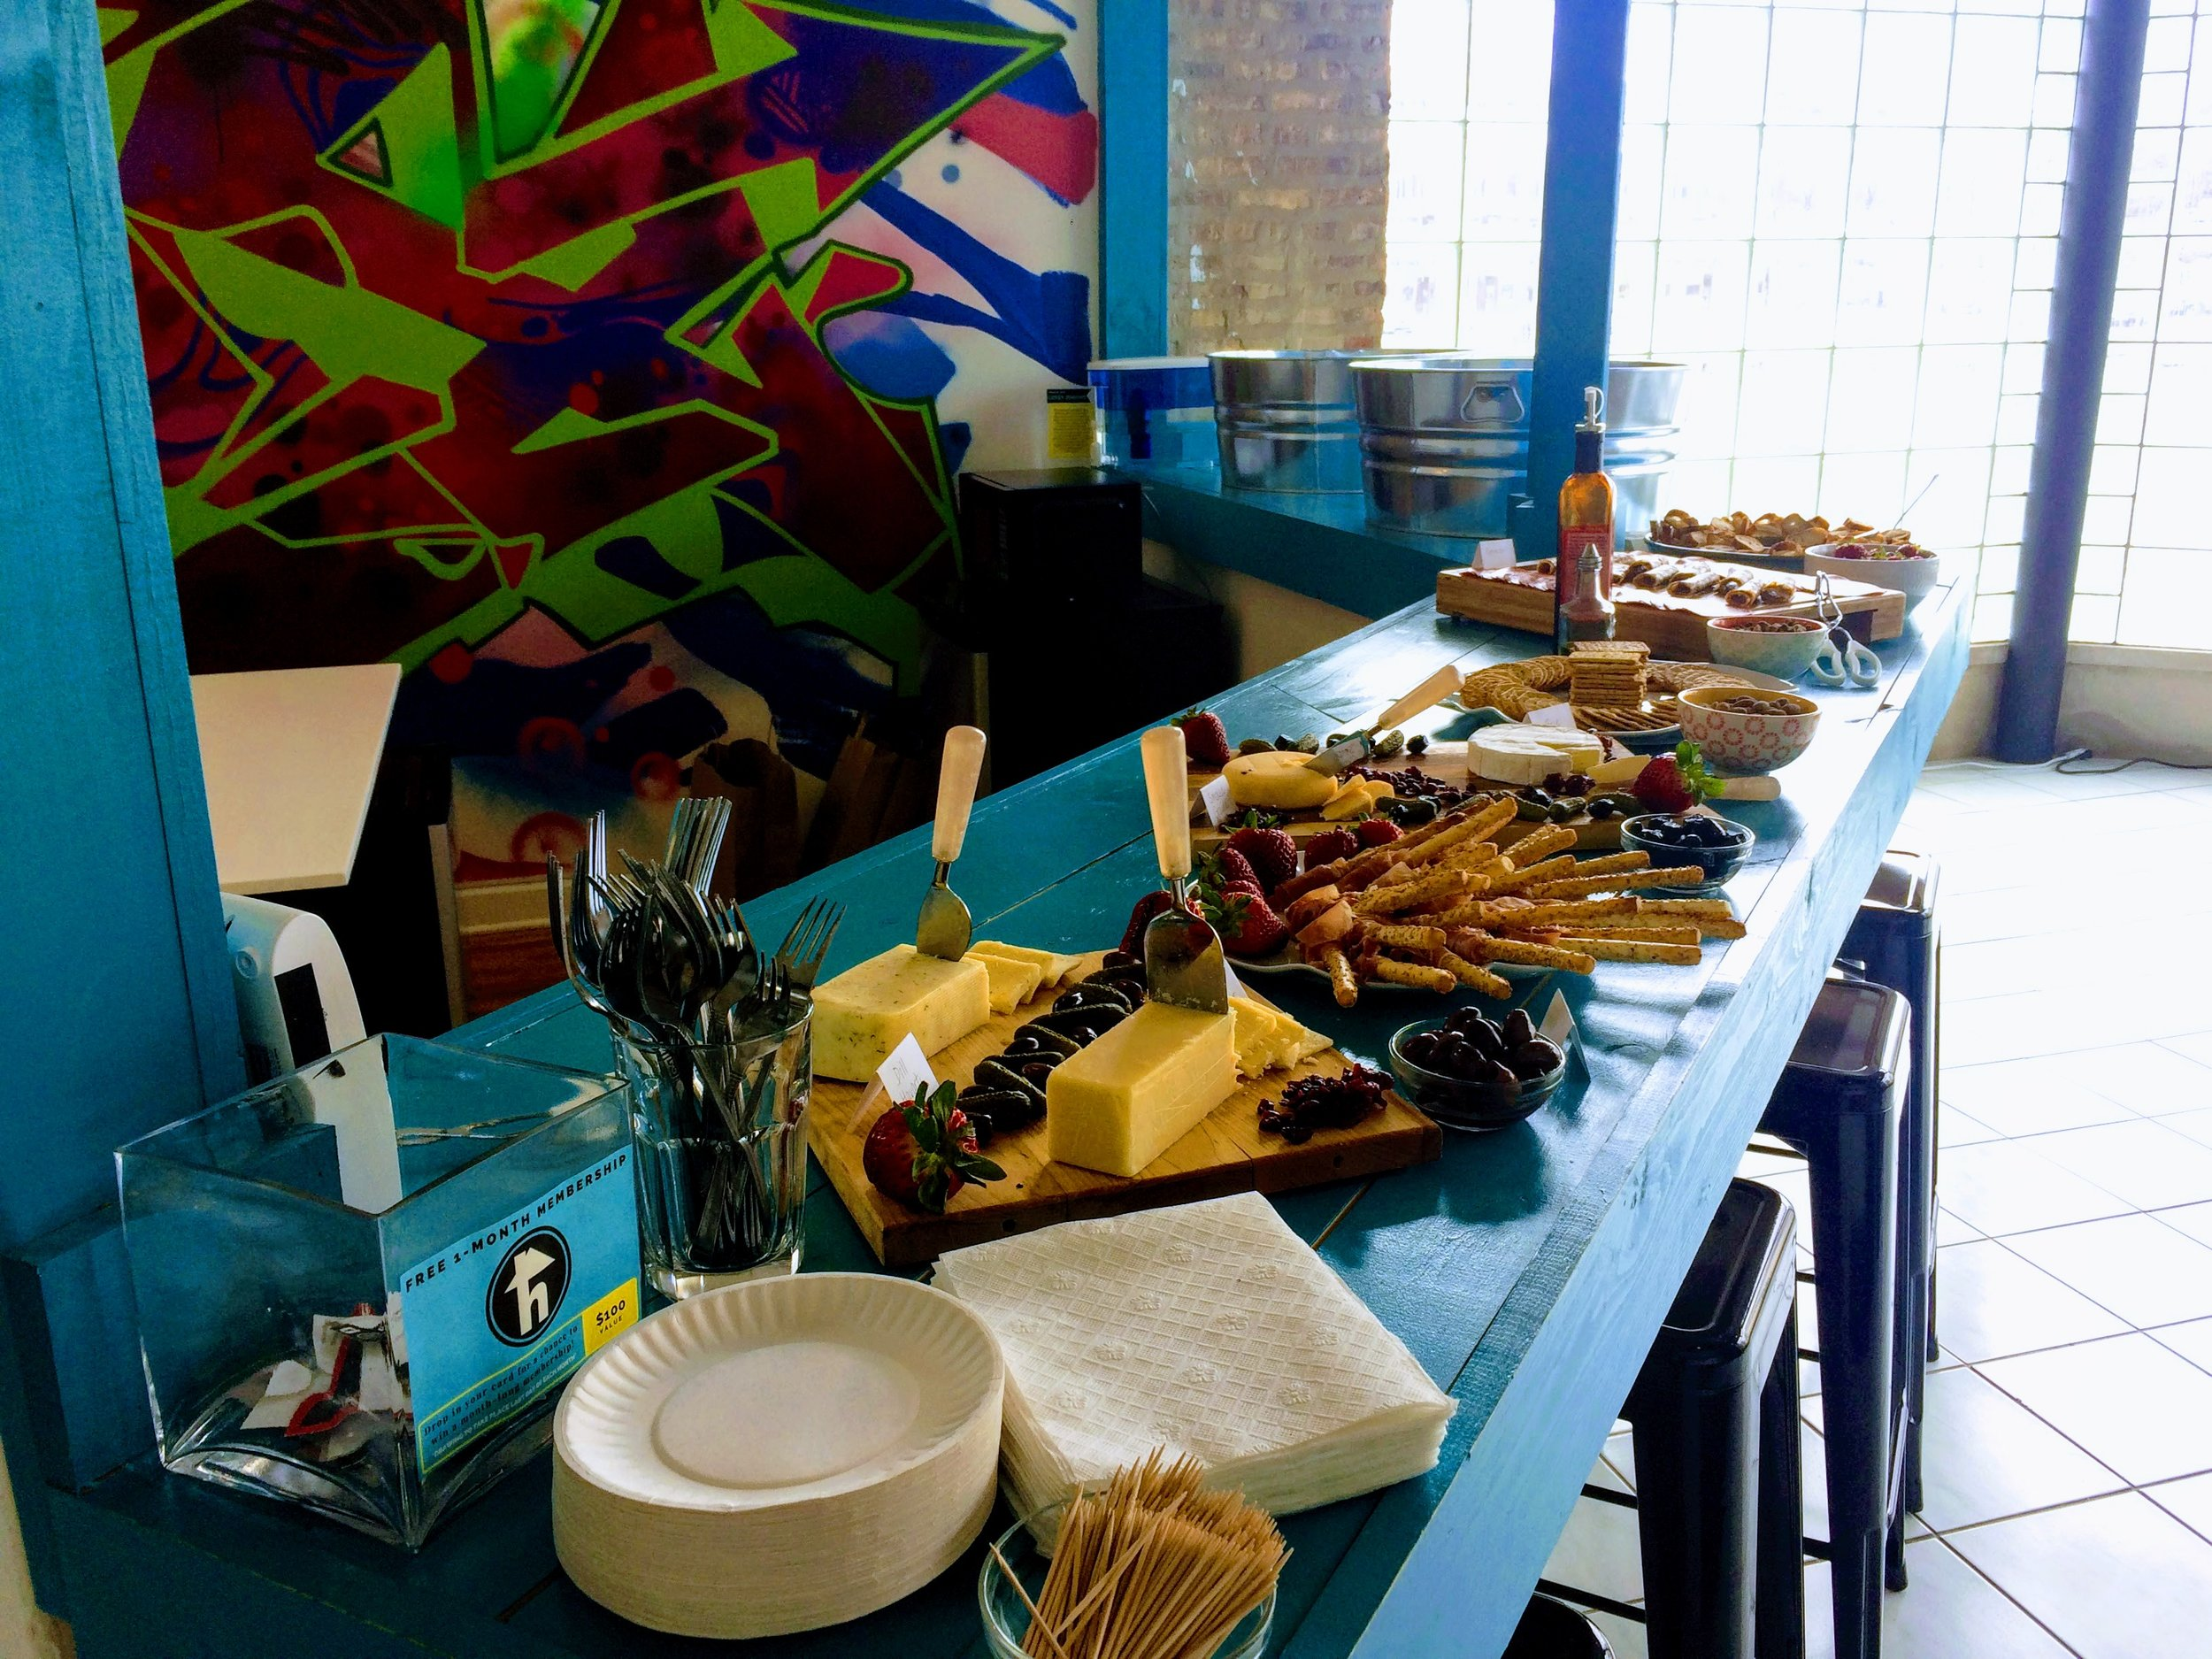 Starting things off right with a delicious spread of food and Lagunitas beer!